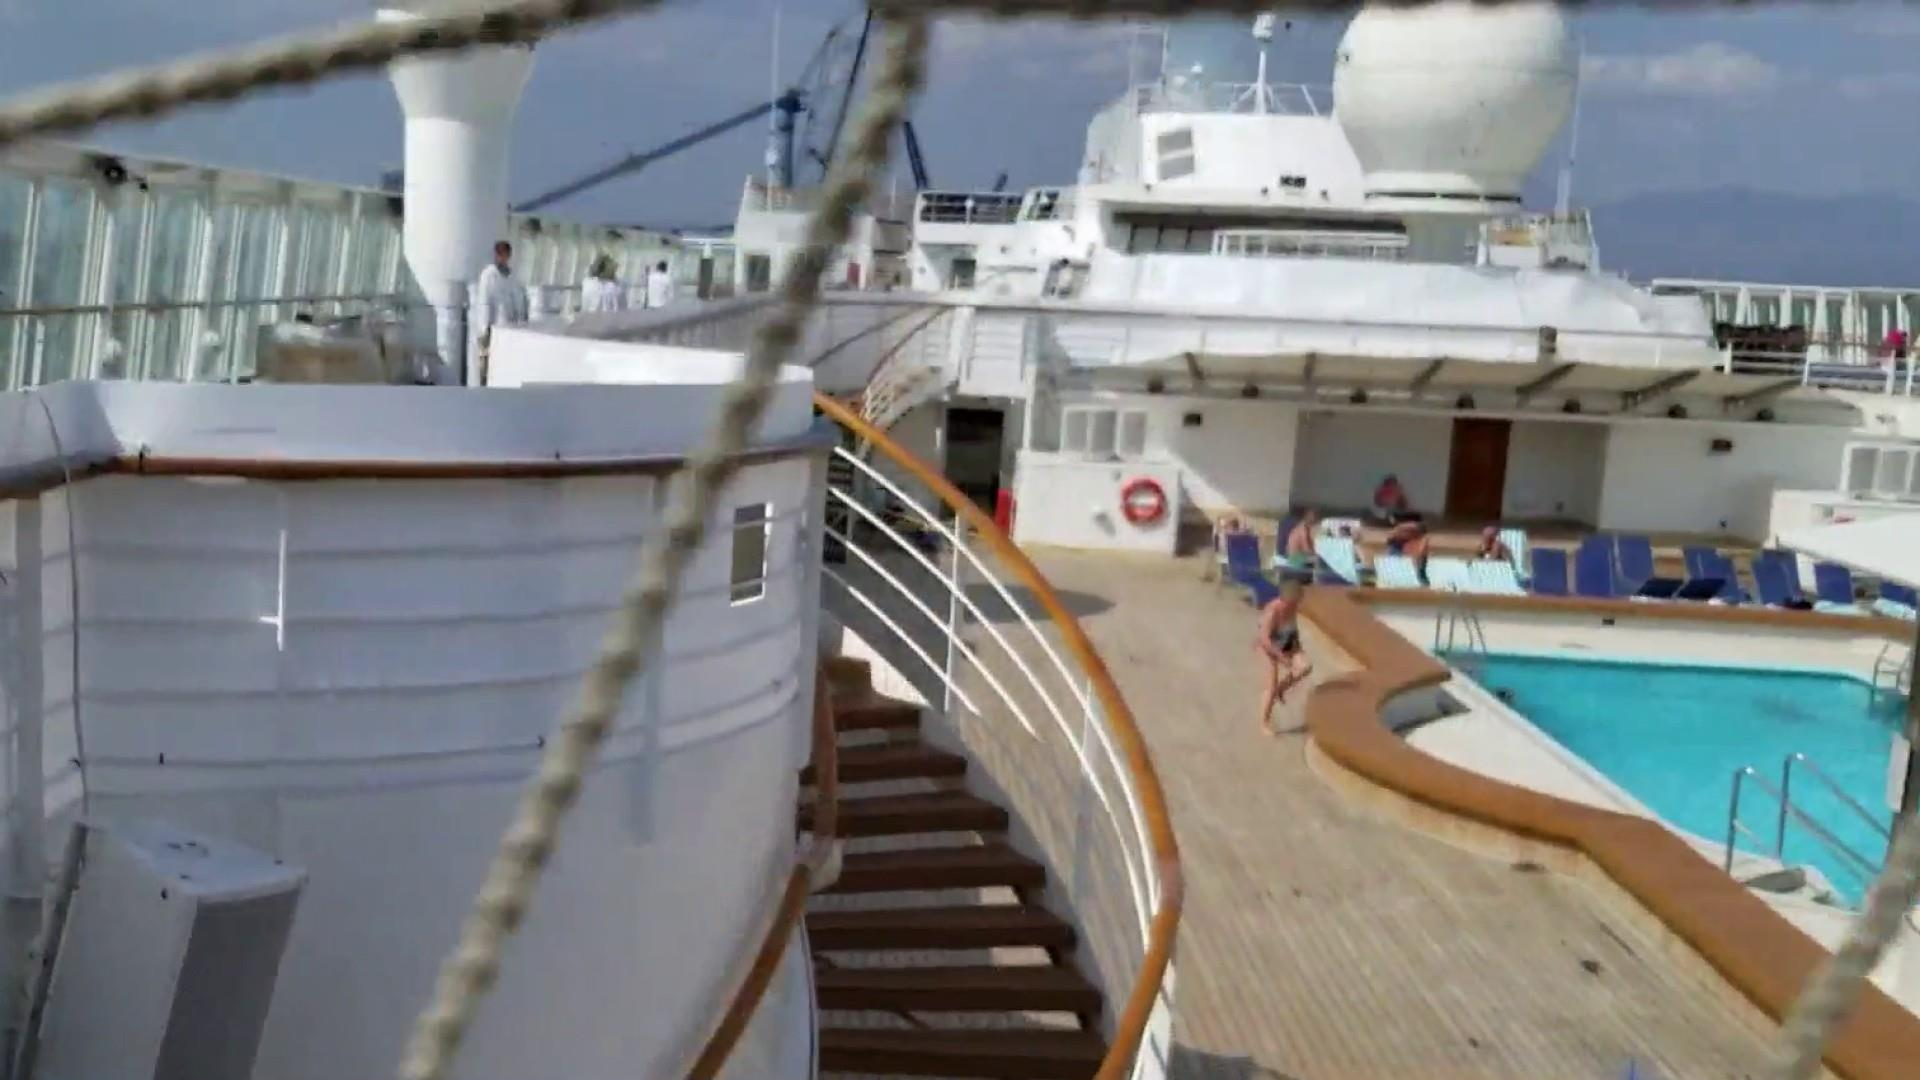 Passengers frustrated after cruise ship becomes 'construction zone ...